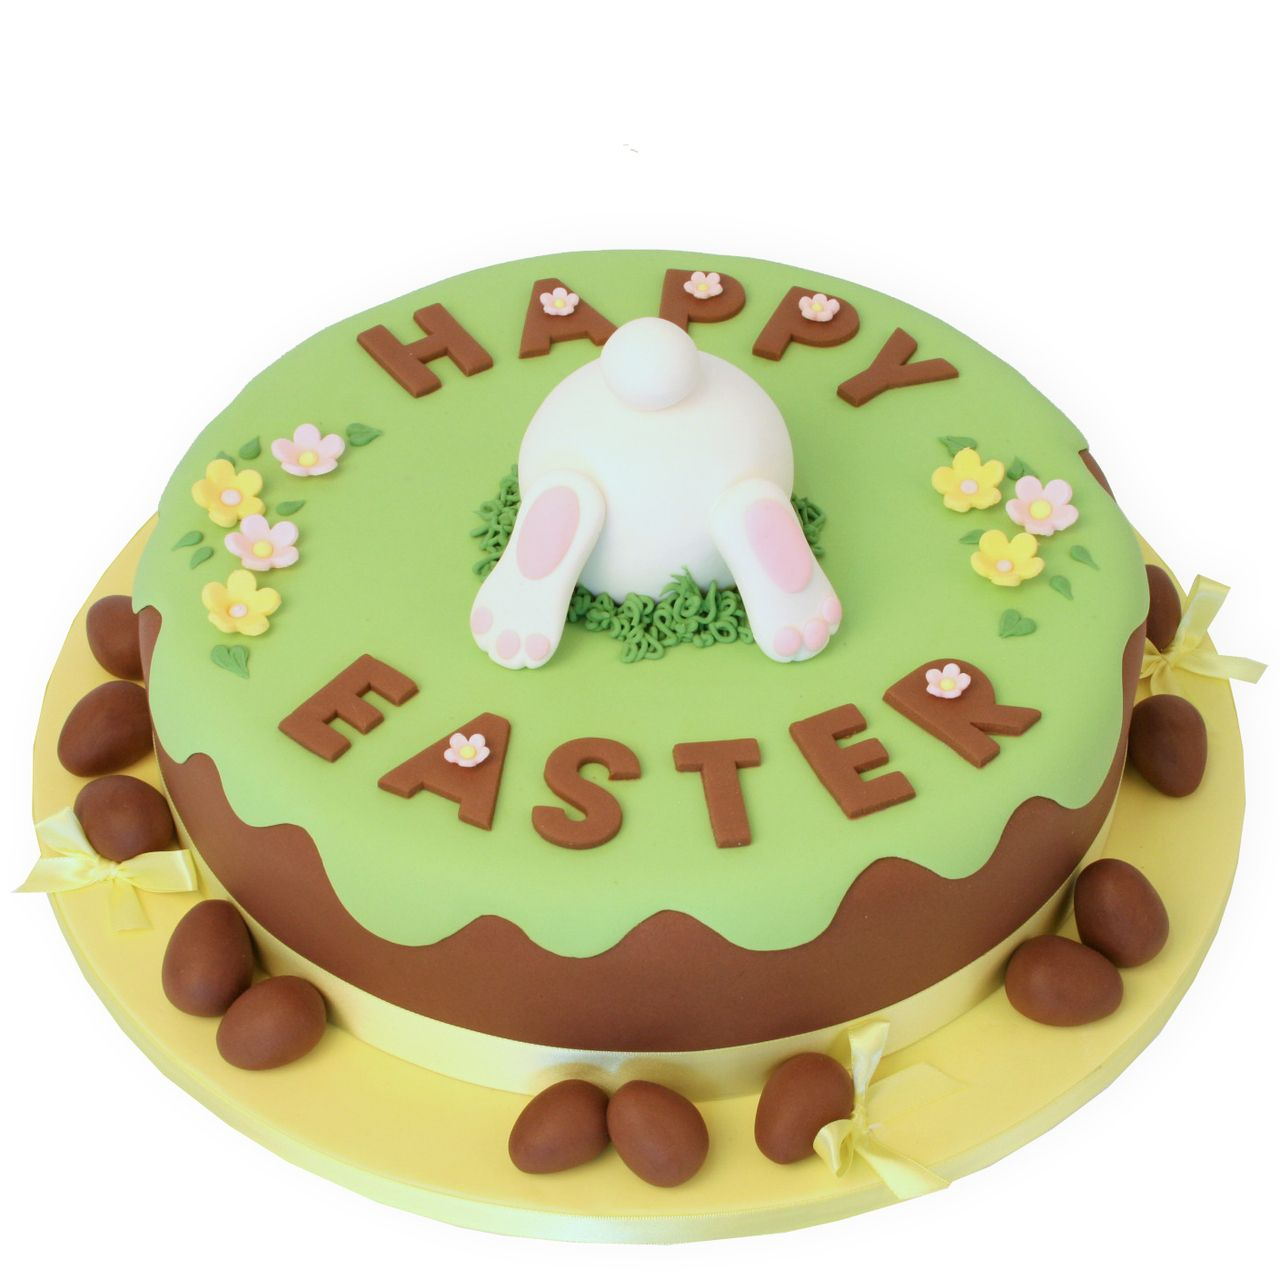 1000+ images about Easter cakes on Pinterest | Easter cake, Cakes ...